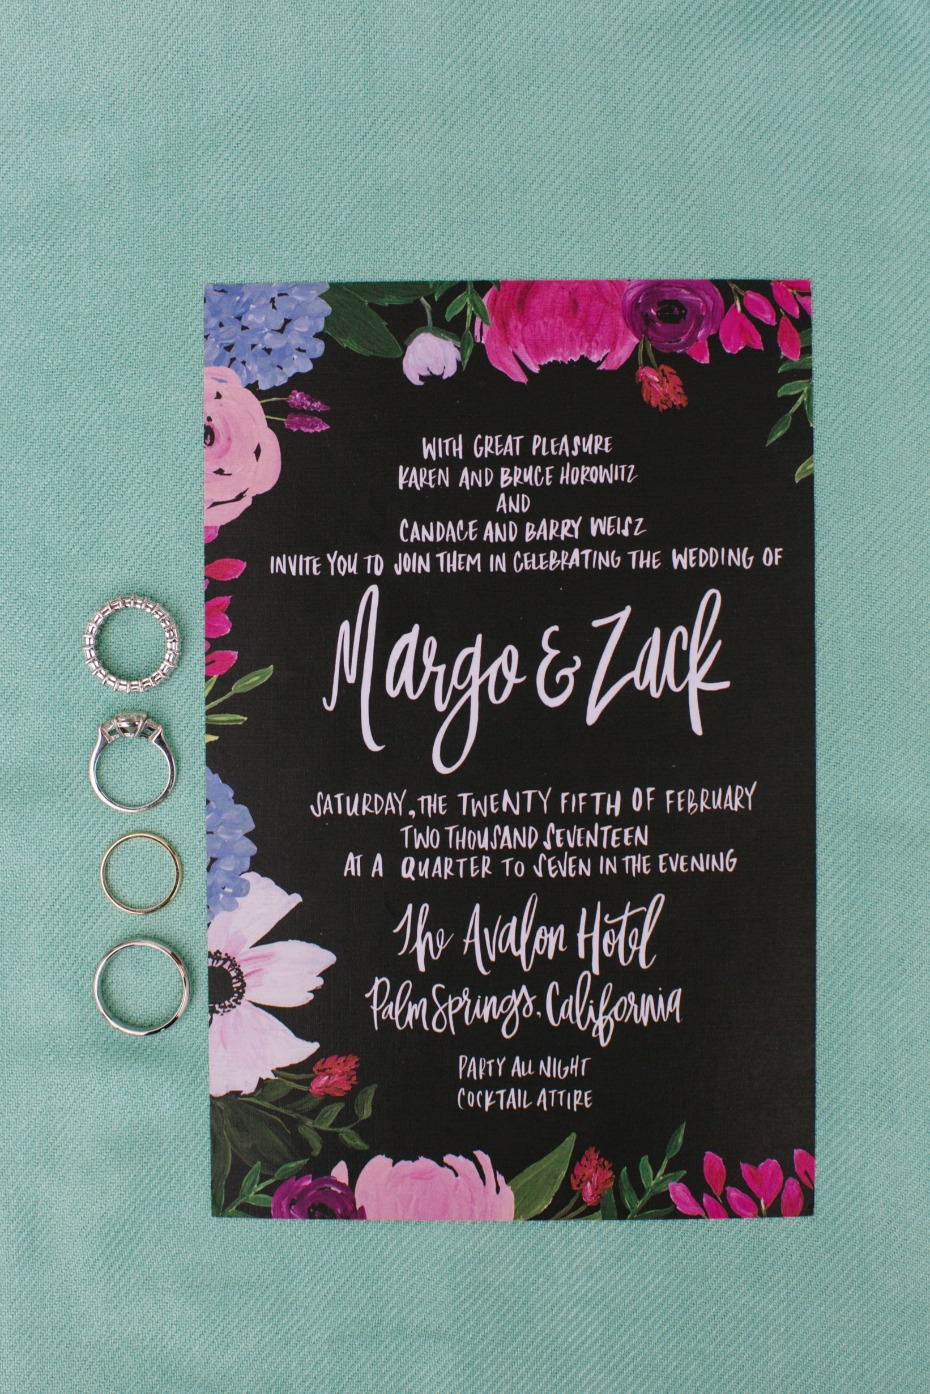 Jewel toned wedding invitation